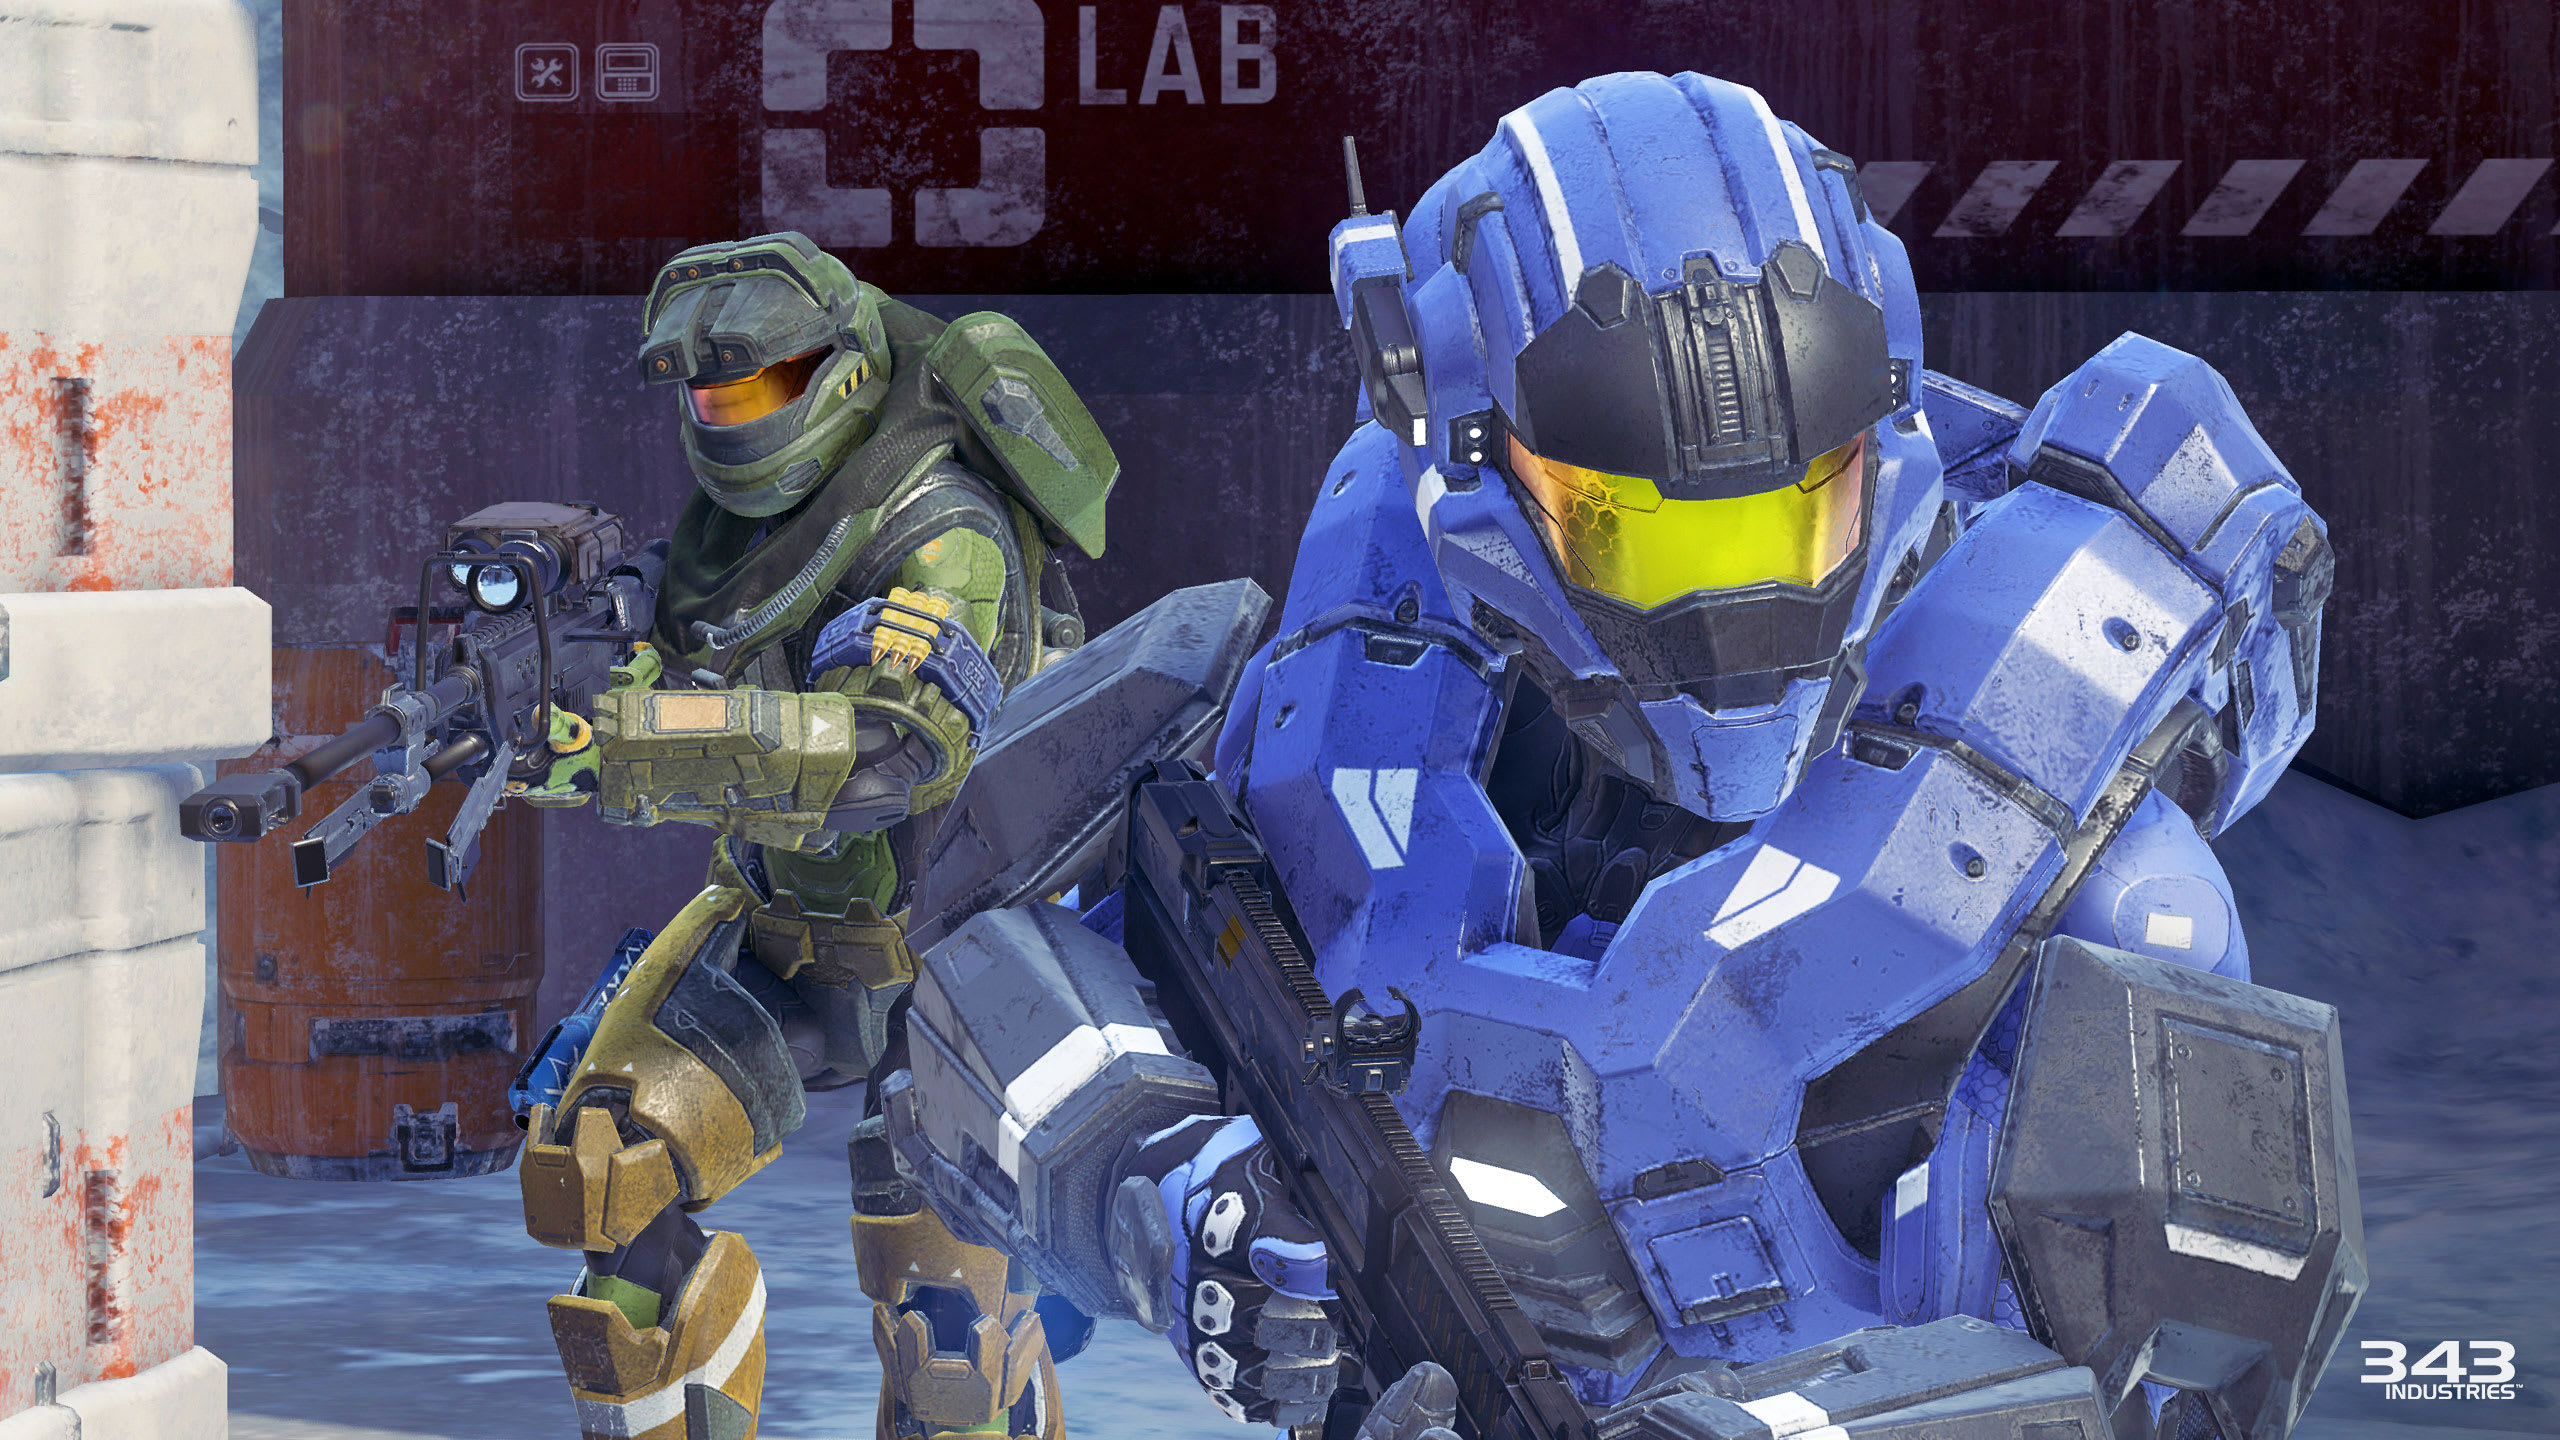 Halo 5' multiplayer is coming to PC    sort of